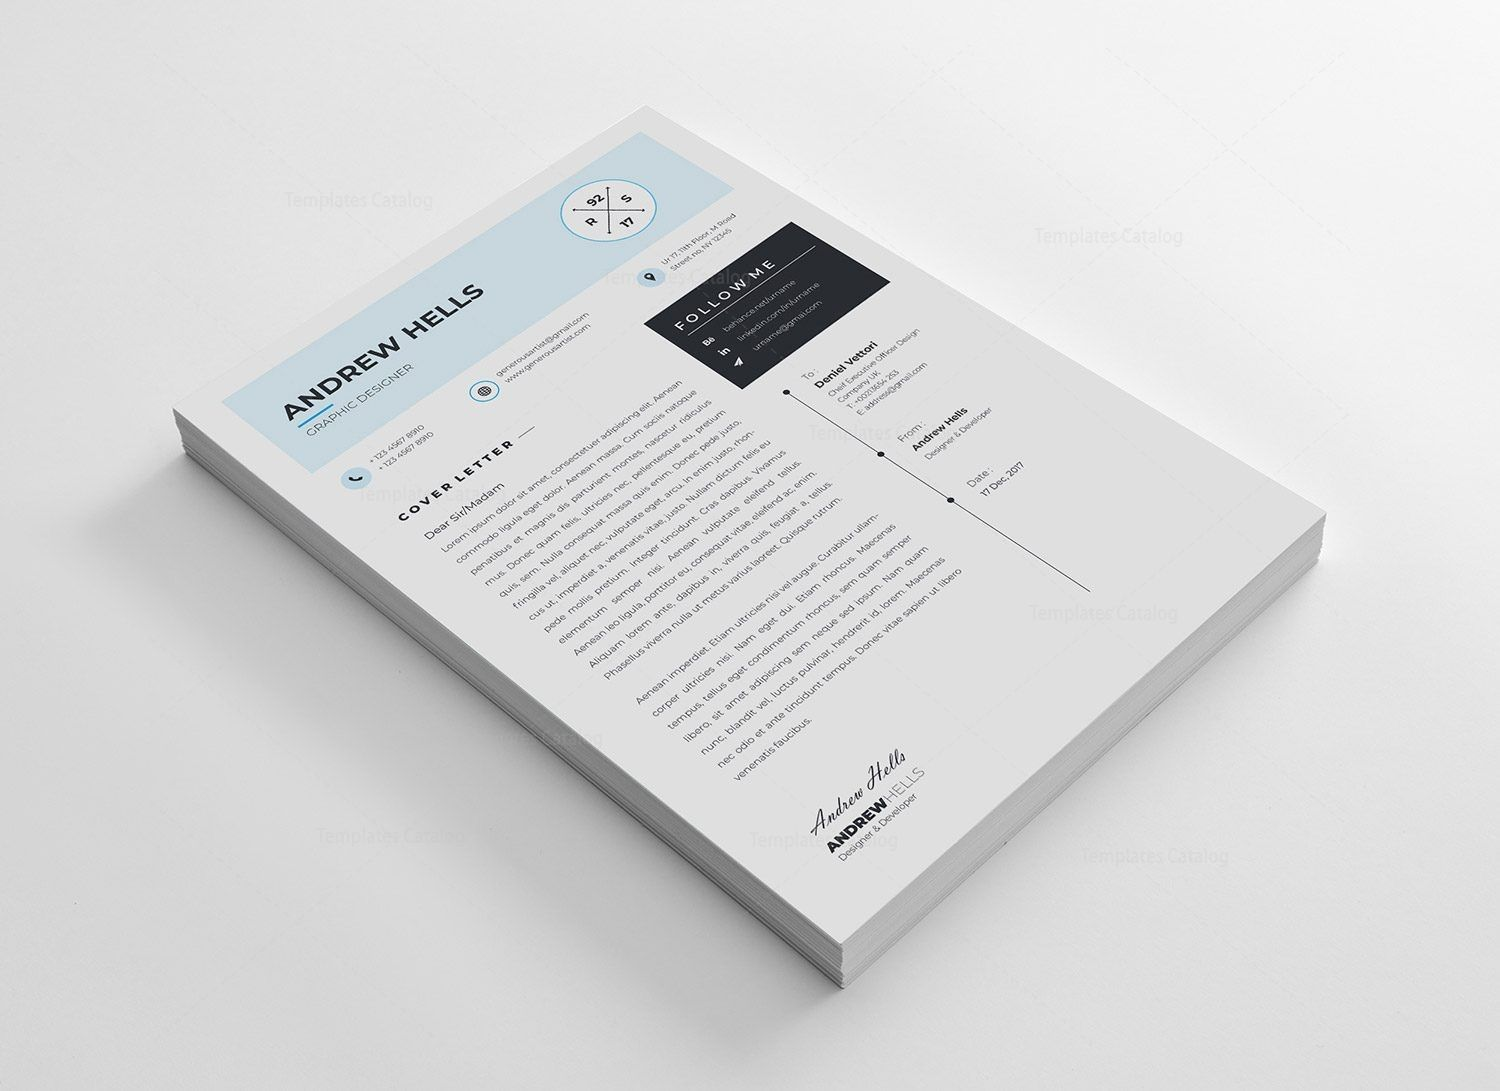 A4 Minimalist Resume Template 002978 - Minimalist resume template, Minimalist resume, Resume template, Resume, Resume design template, Templates - A4 Minimalist Resume Template  The perfect way to make the best impression  Strong typographic structure and very easy to use and customize  The resume template